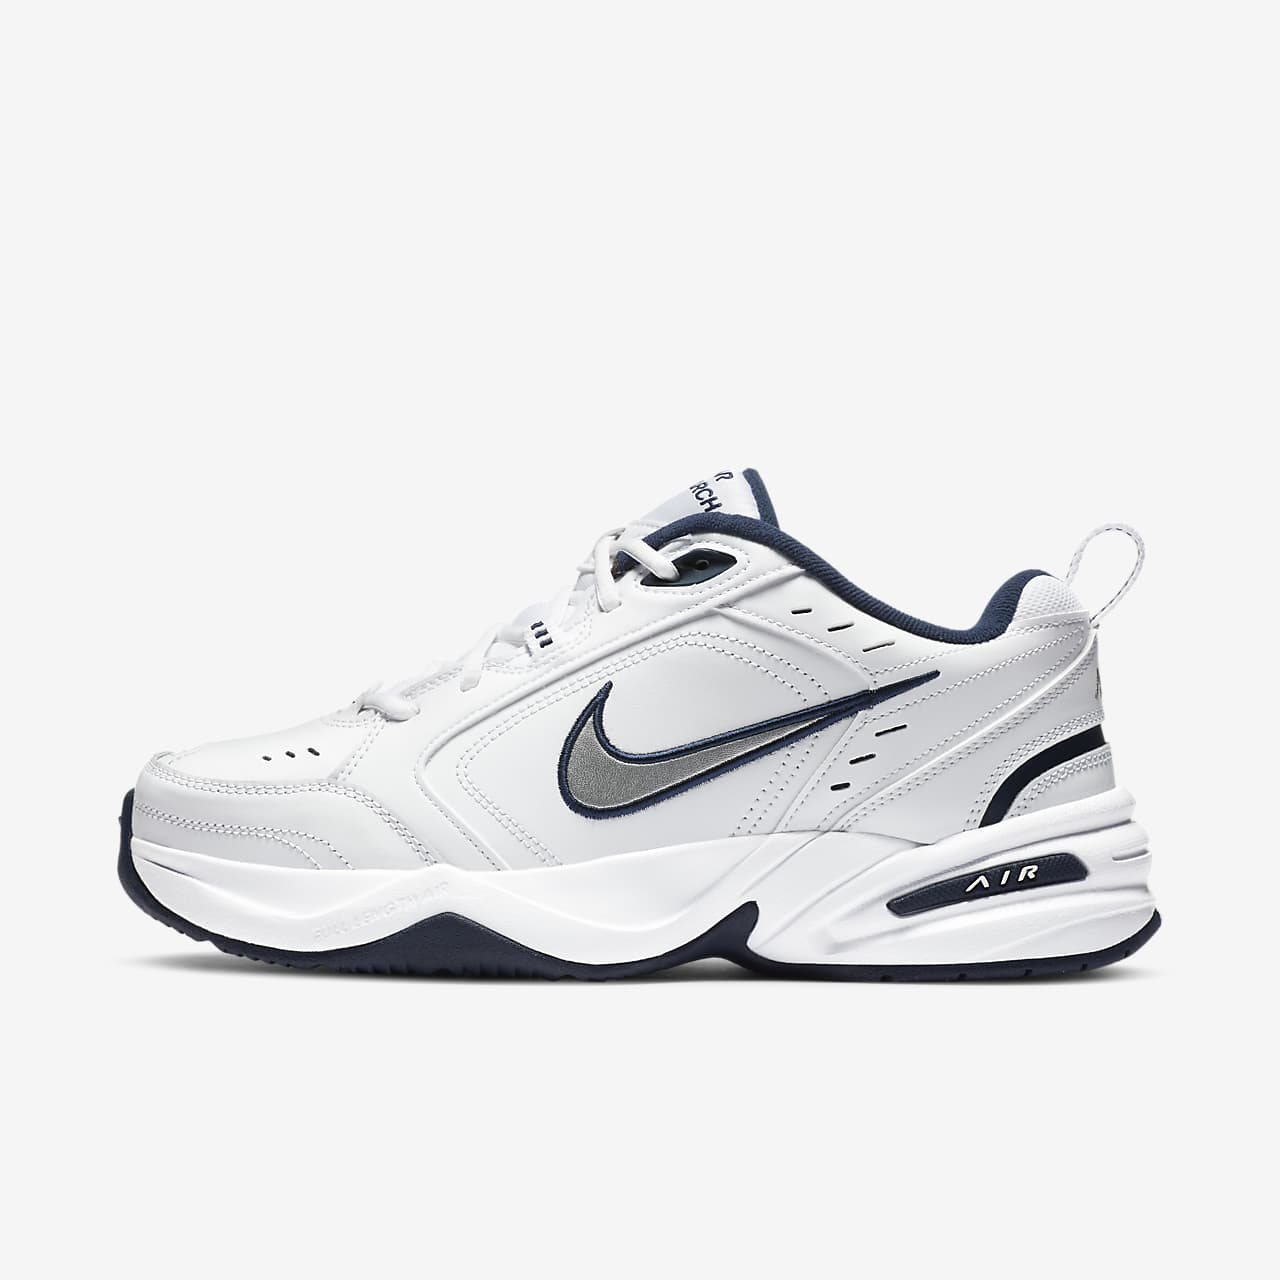 nike shoes 4 faster car 1 hurt/comforty/ 880025